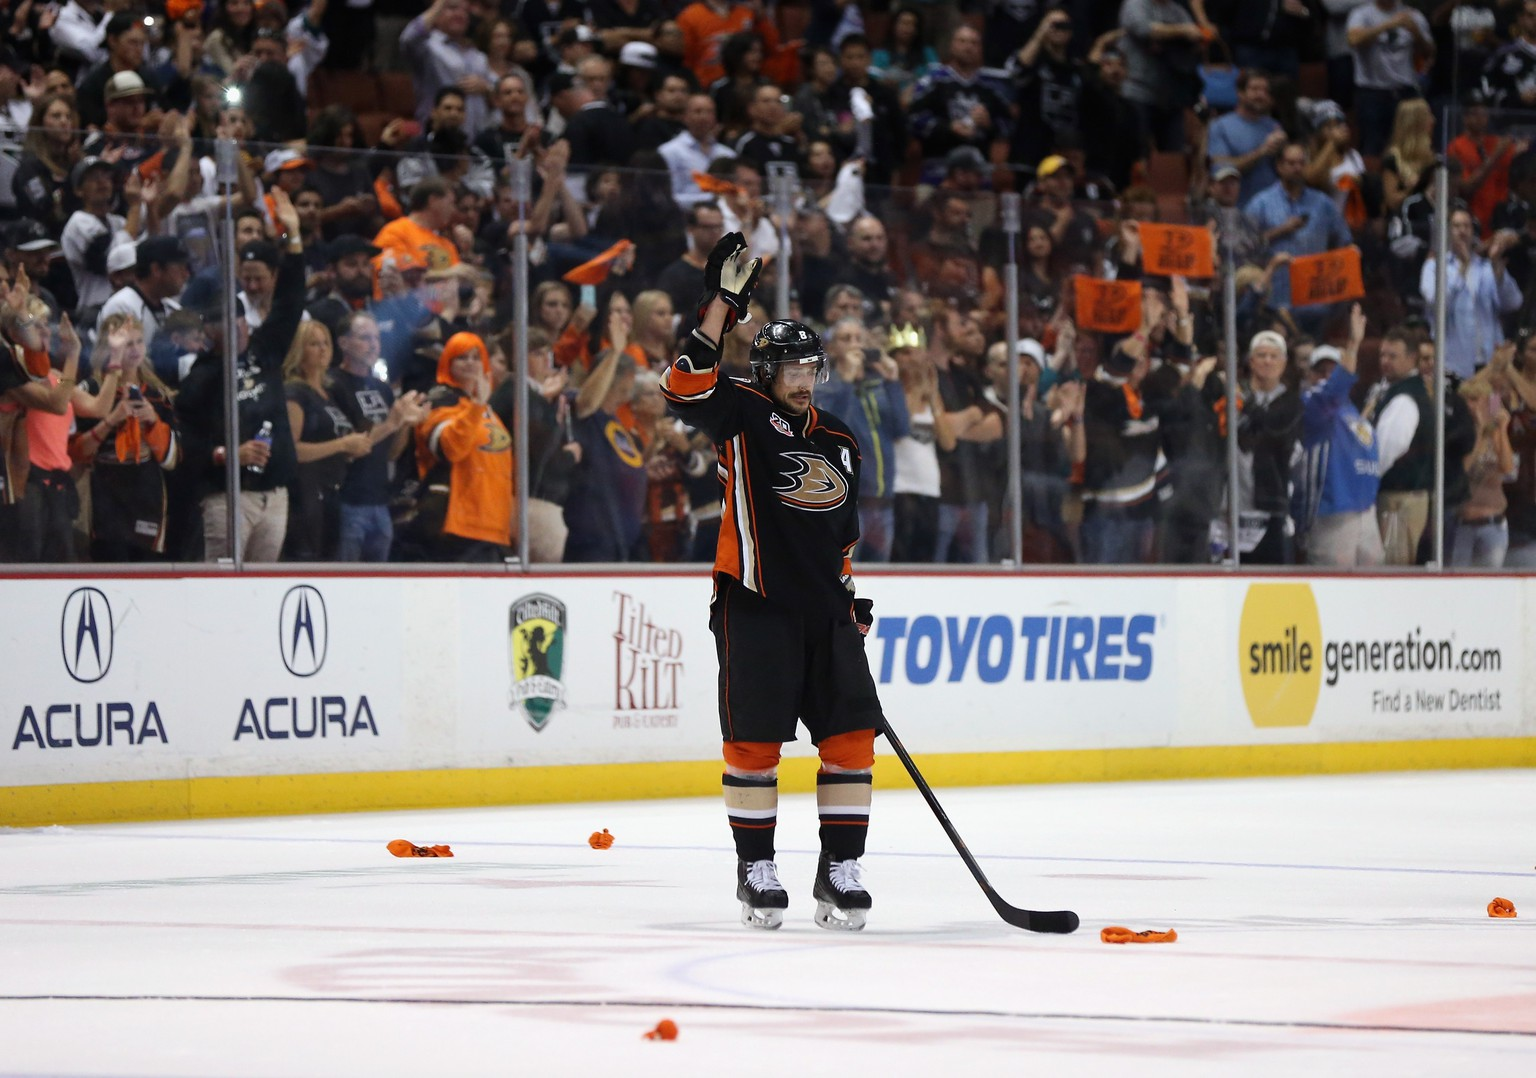 ANAHEIM, CA - MAY 16:  Teemu Selanne #8 of the Anaheim Ducks acknowledges the fans following his final NHL game in Game Seven of the Second Round of the 2014 NHL Stanley Cup Playoffs at Honda Center on May 16, 2014 in Anaheim, California.  (Photo by Jeff Gross/Getty Images)